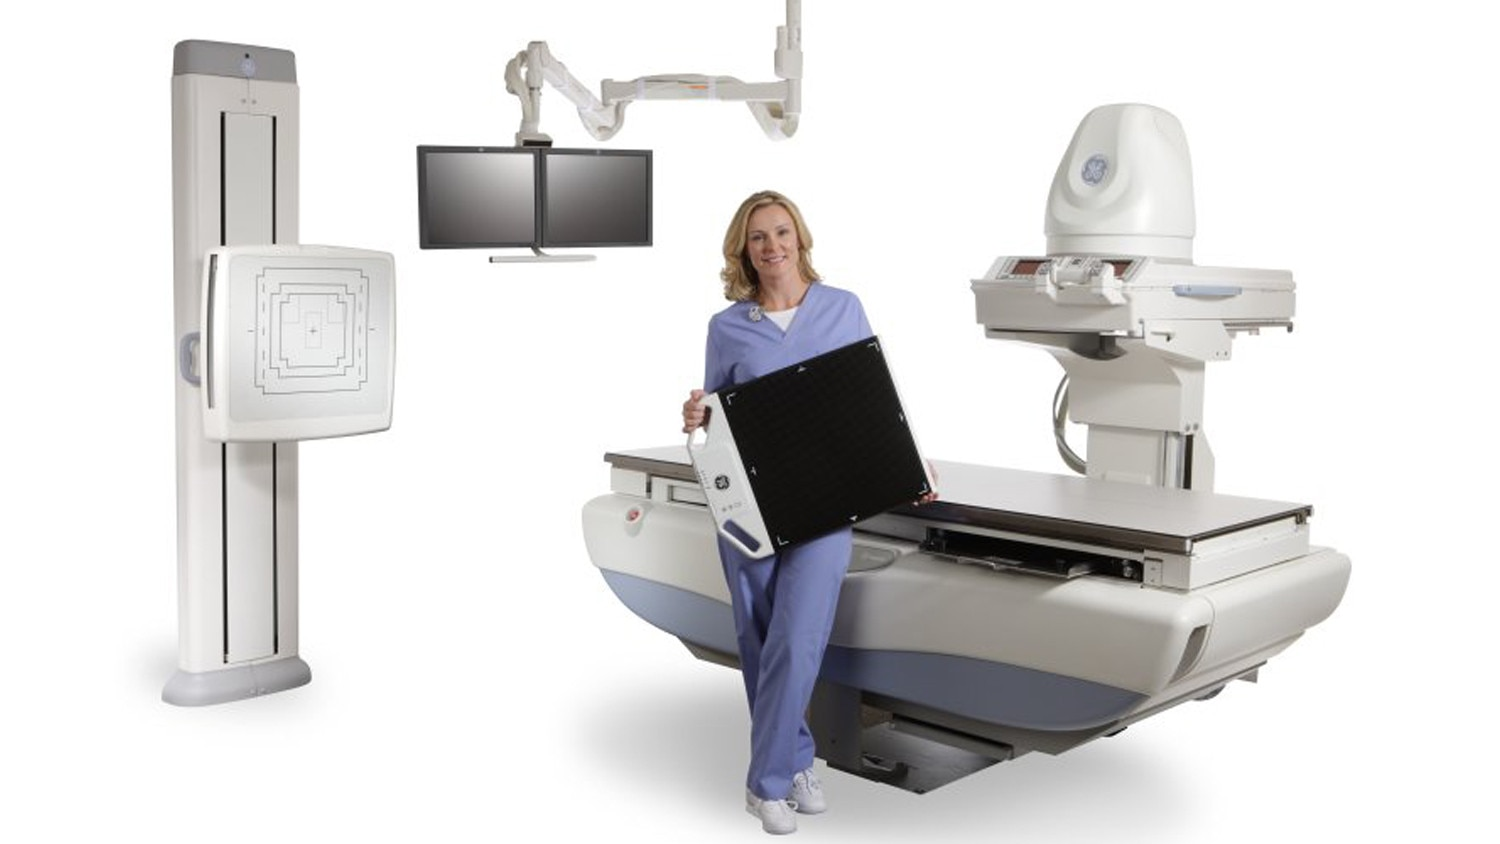 education-product-education-clinical-tip-applications-x-ray-precision-500d-system.jpg